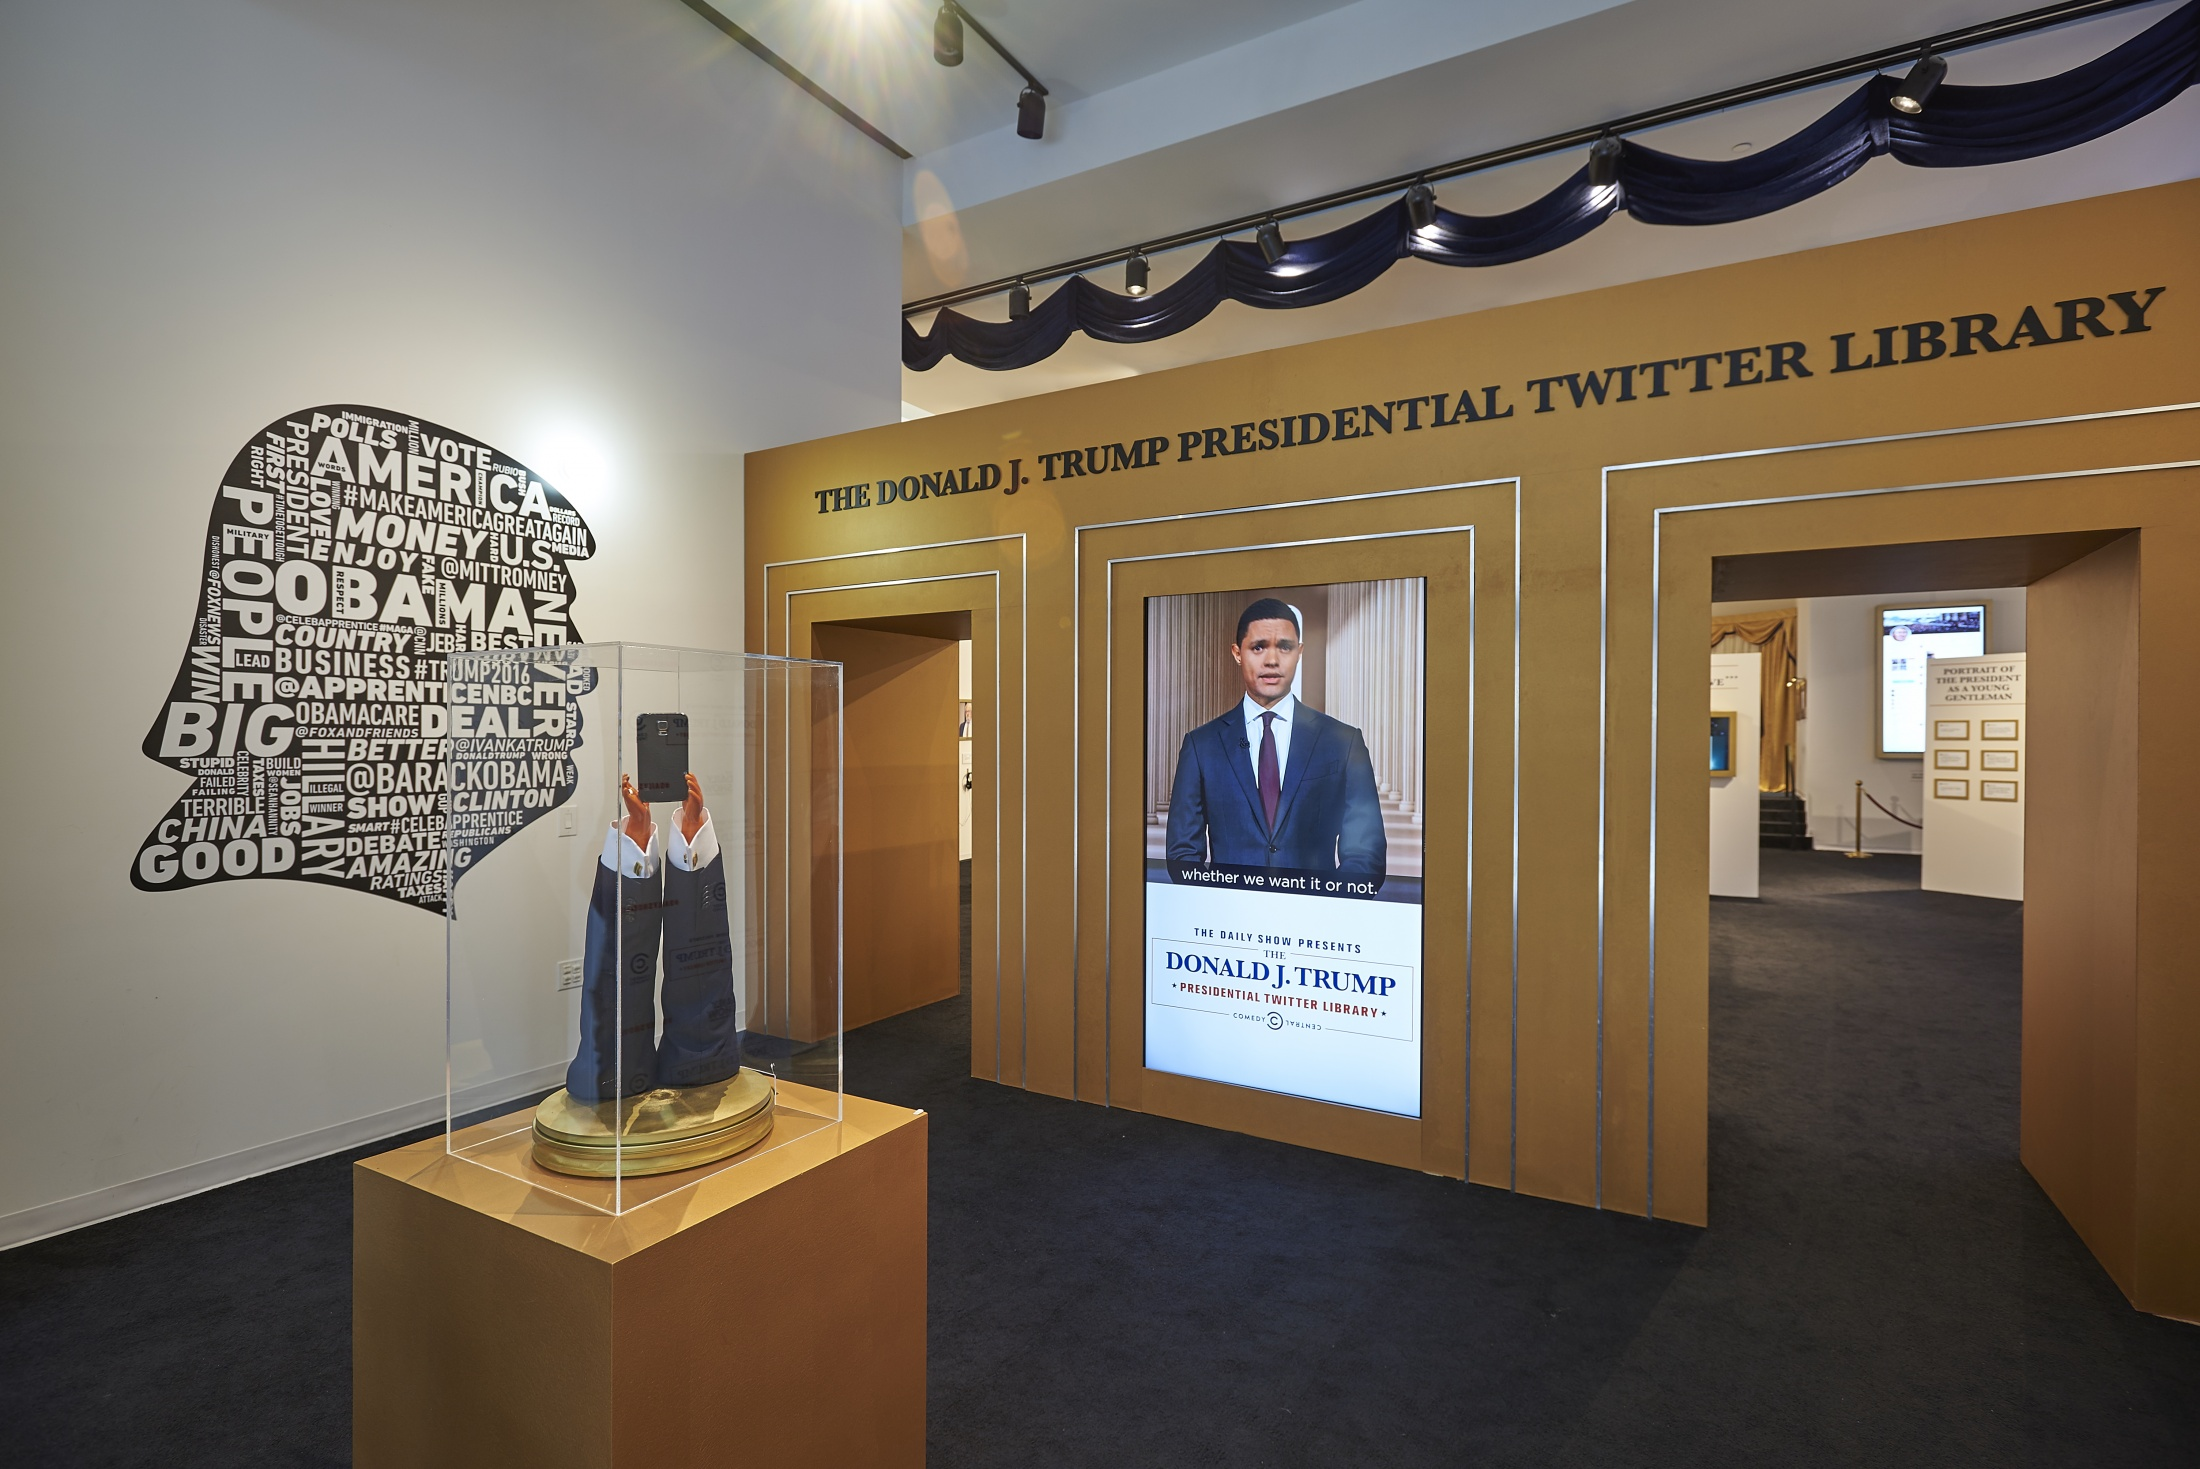 Image Media for THE DAILY SHOW PRESENTS THE DONALD J TRUMP PRESIDENTIAL TWITTER LIBRARY